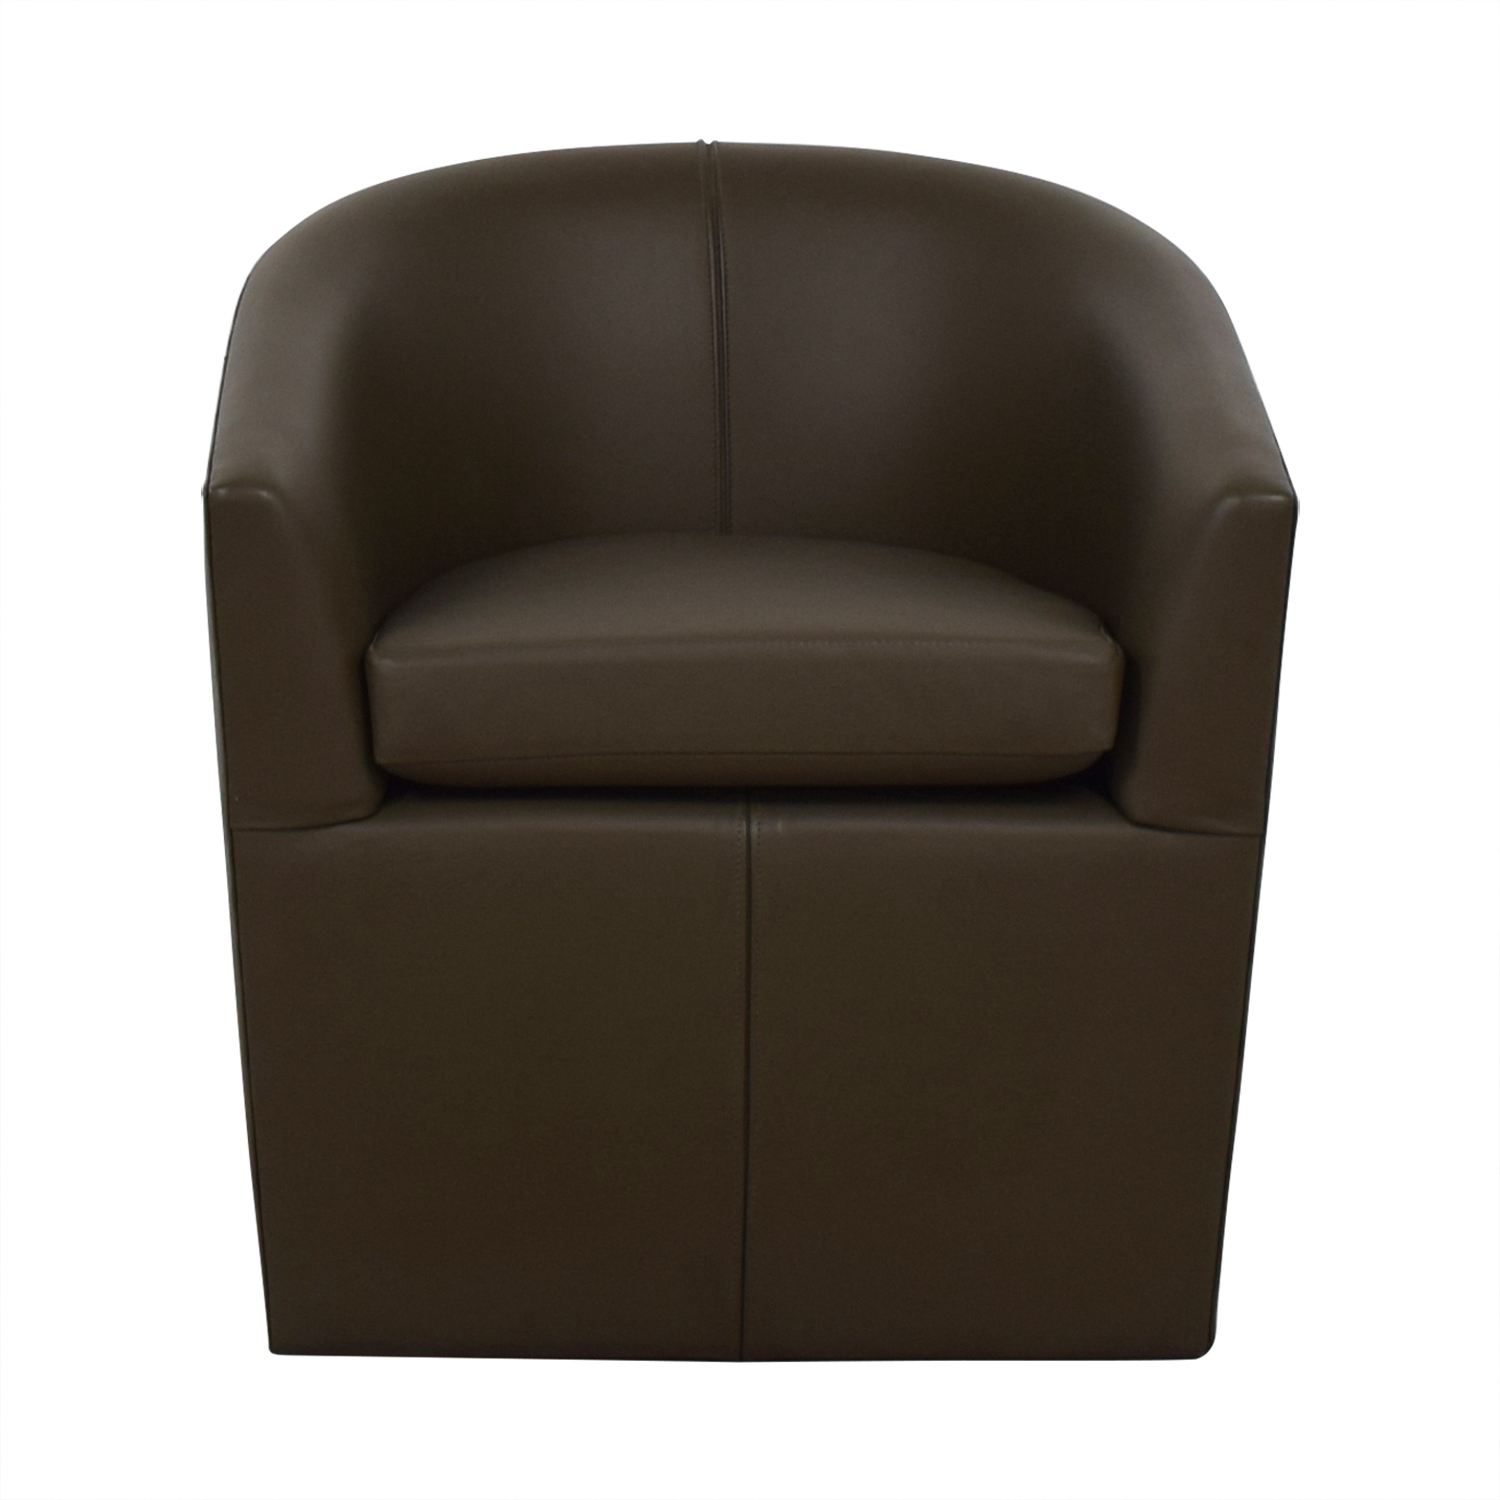 Furniture Masters Furniture Masters Club Accent Chair nyc